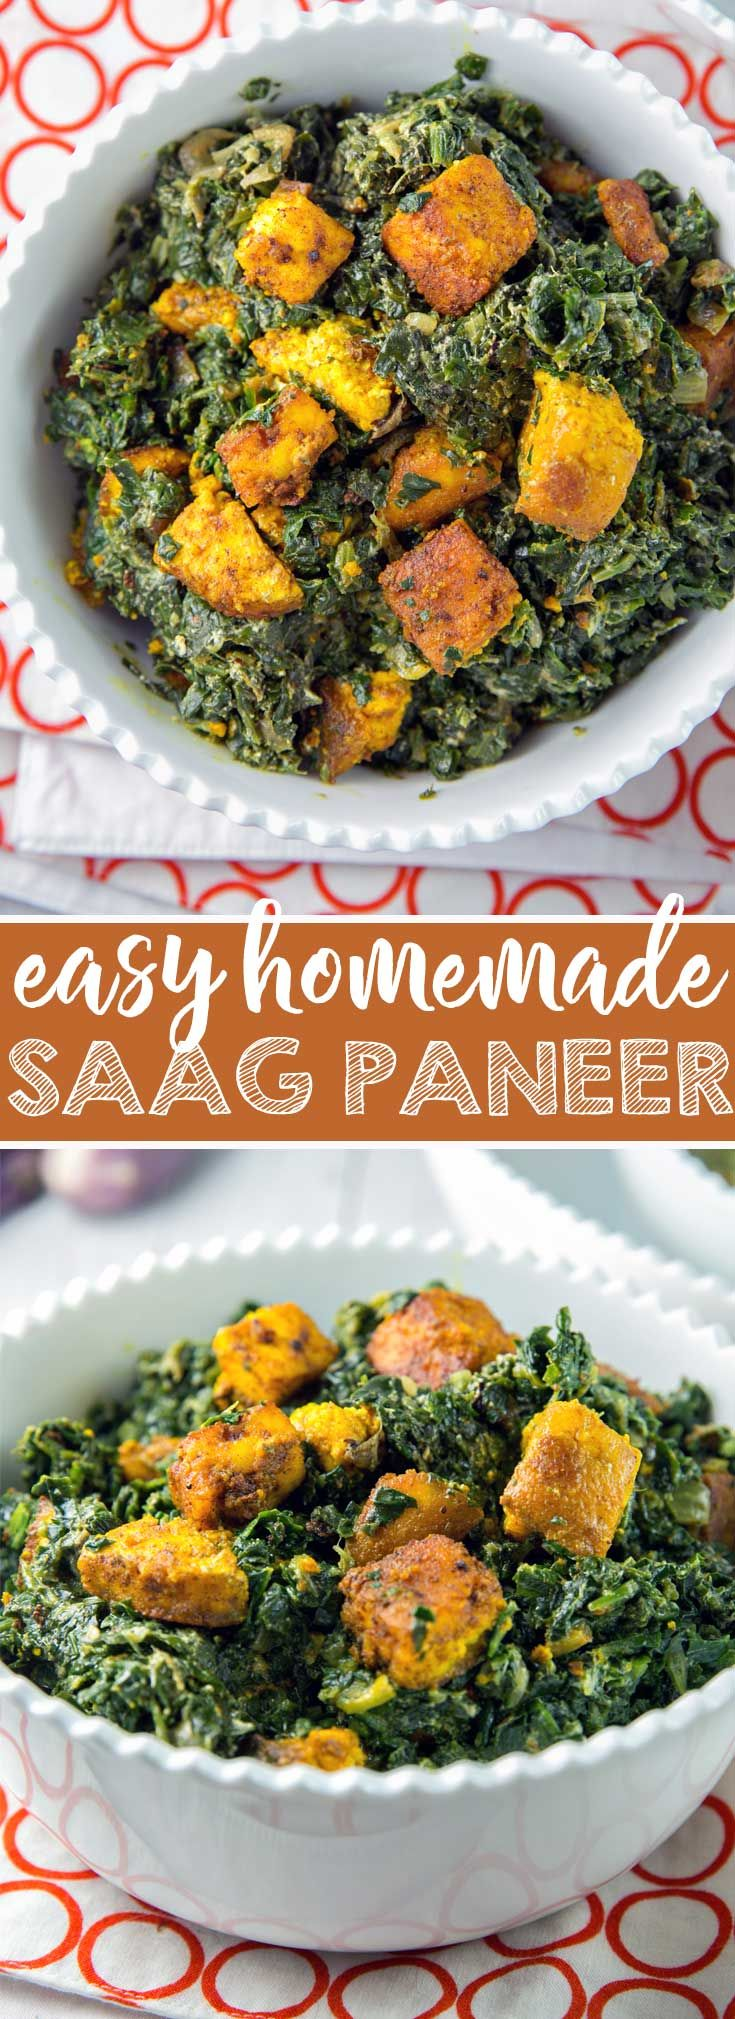 Easy Homemade Saag Panner: Make your own Indian food at home with this easy saag paneer recipe, plus substitutions if you have difficulties finding paneer. {Bunsen Burner Bakery} #saagpaneer #indian #vegetarian #glutenfree via @bnsnbrnrbakery